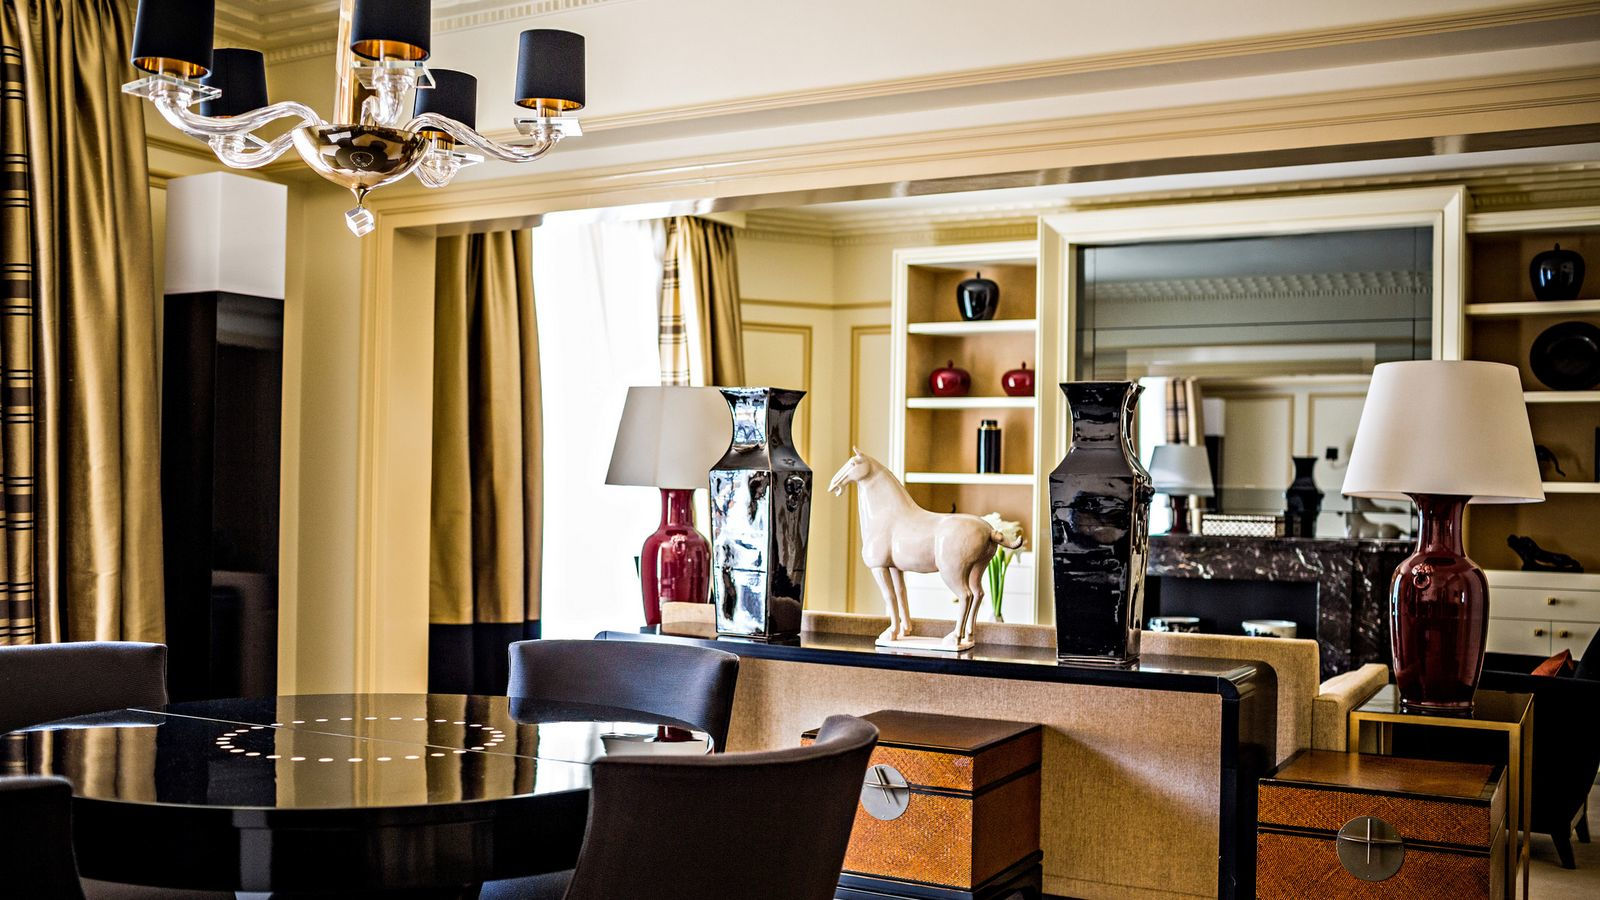 Prince de Galles Suite Saphir in Prince de Galles, Paris